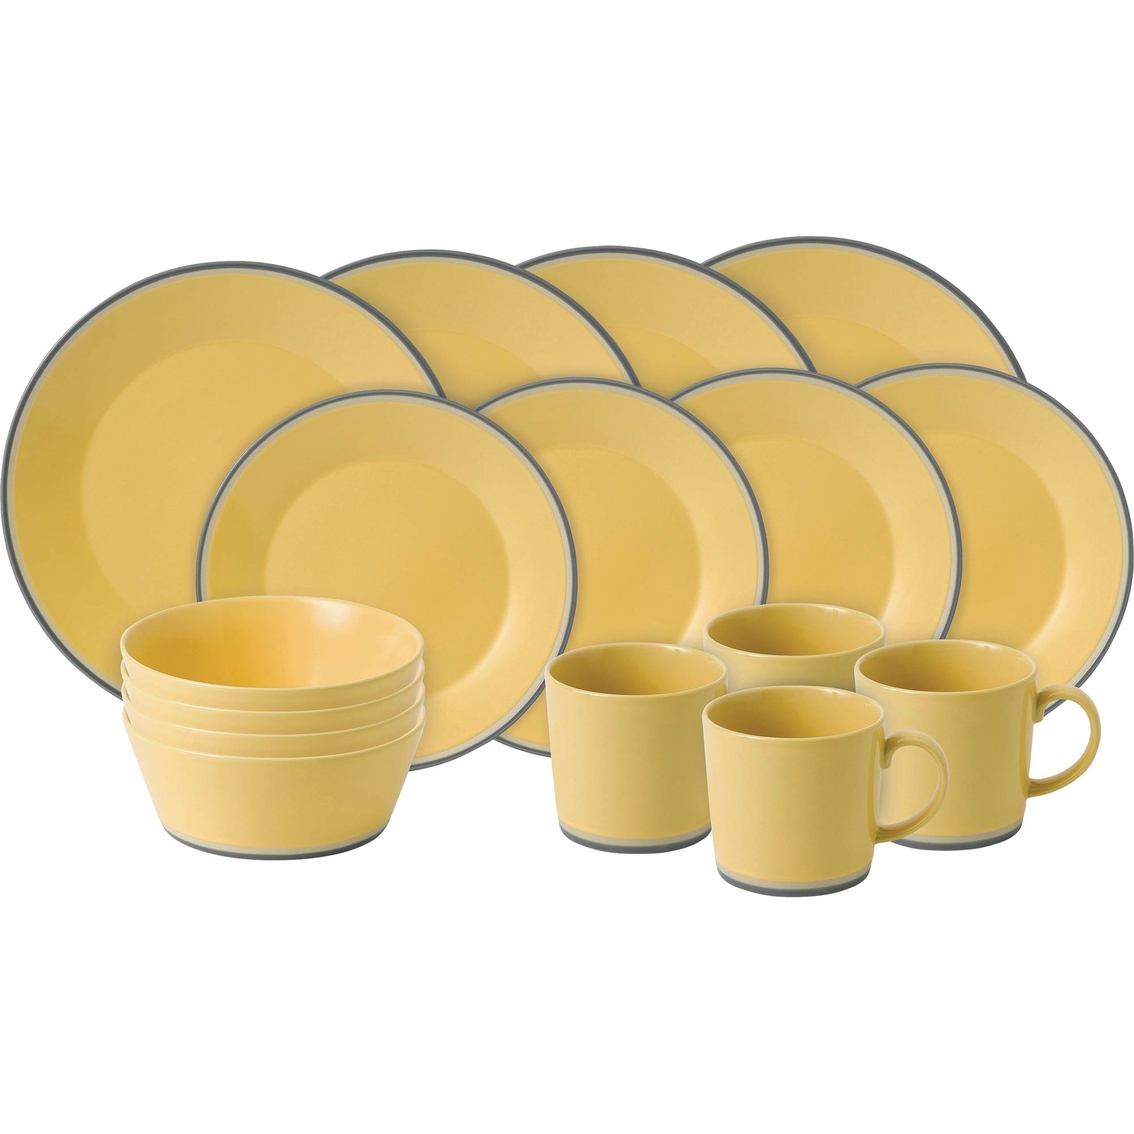 Royal Doulton Colours Yellow 16 Pc. Dinnerware Set   Dinnerware & Completer Sets   Home ...